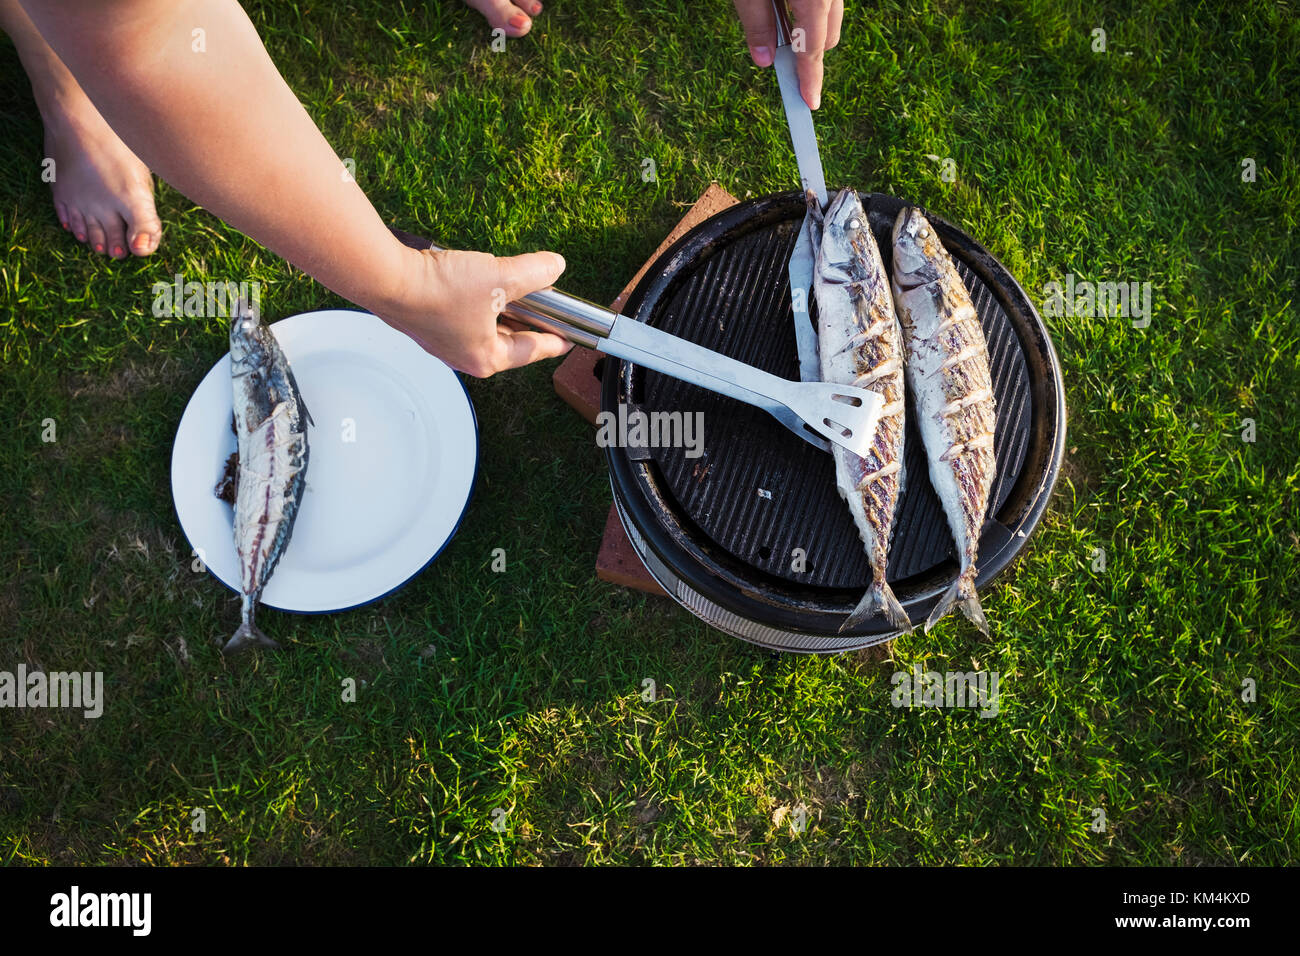 A woman barbequeing two fresh mackerel fish on a small grill, turning the fish. - Stock Image